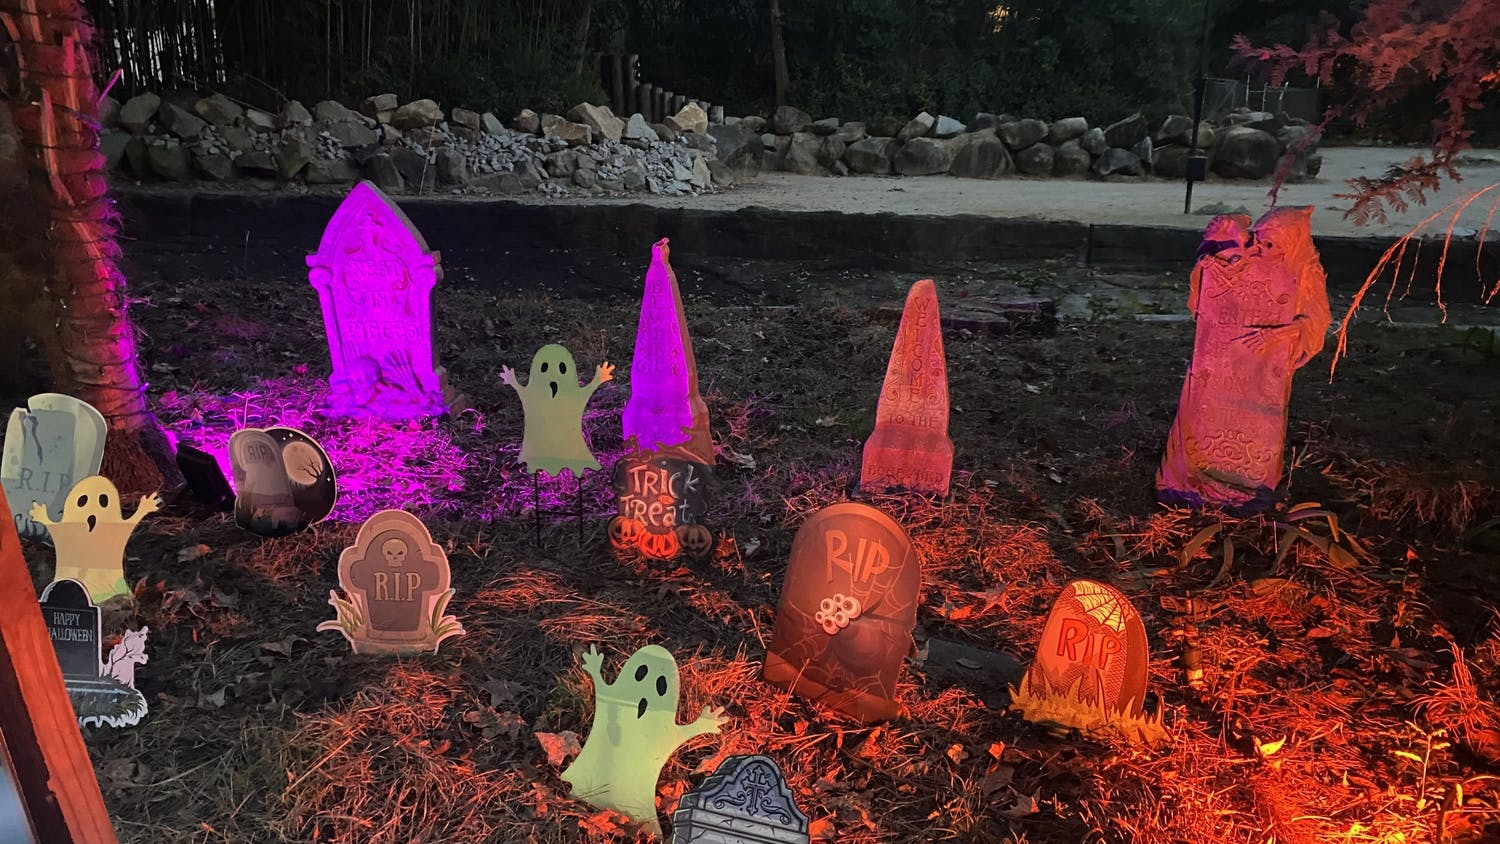 Decoration of a graveyard at Riverbanks Zoo during the 11-night long Halloween-themed event, Boo at the Zoo.